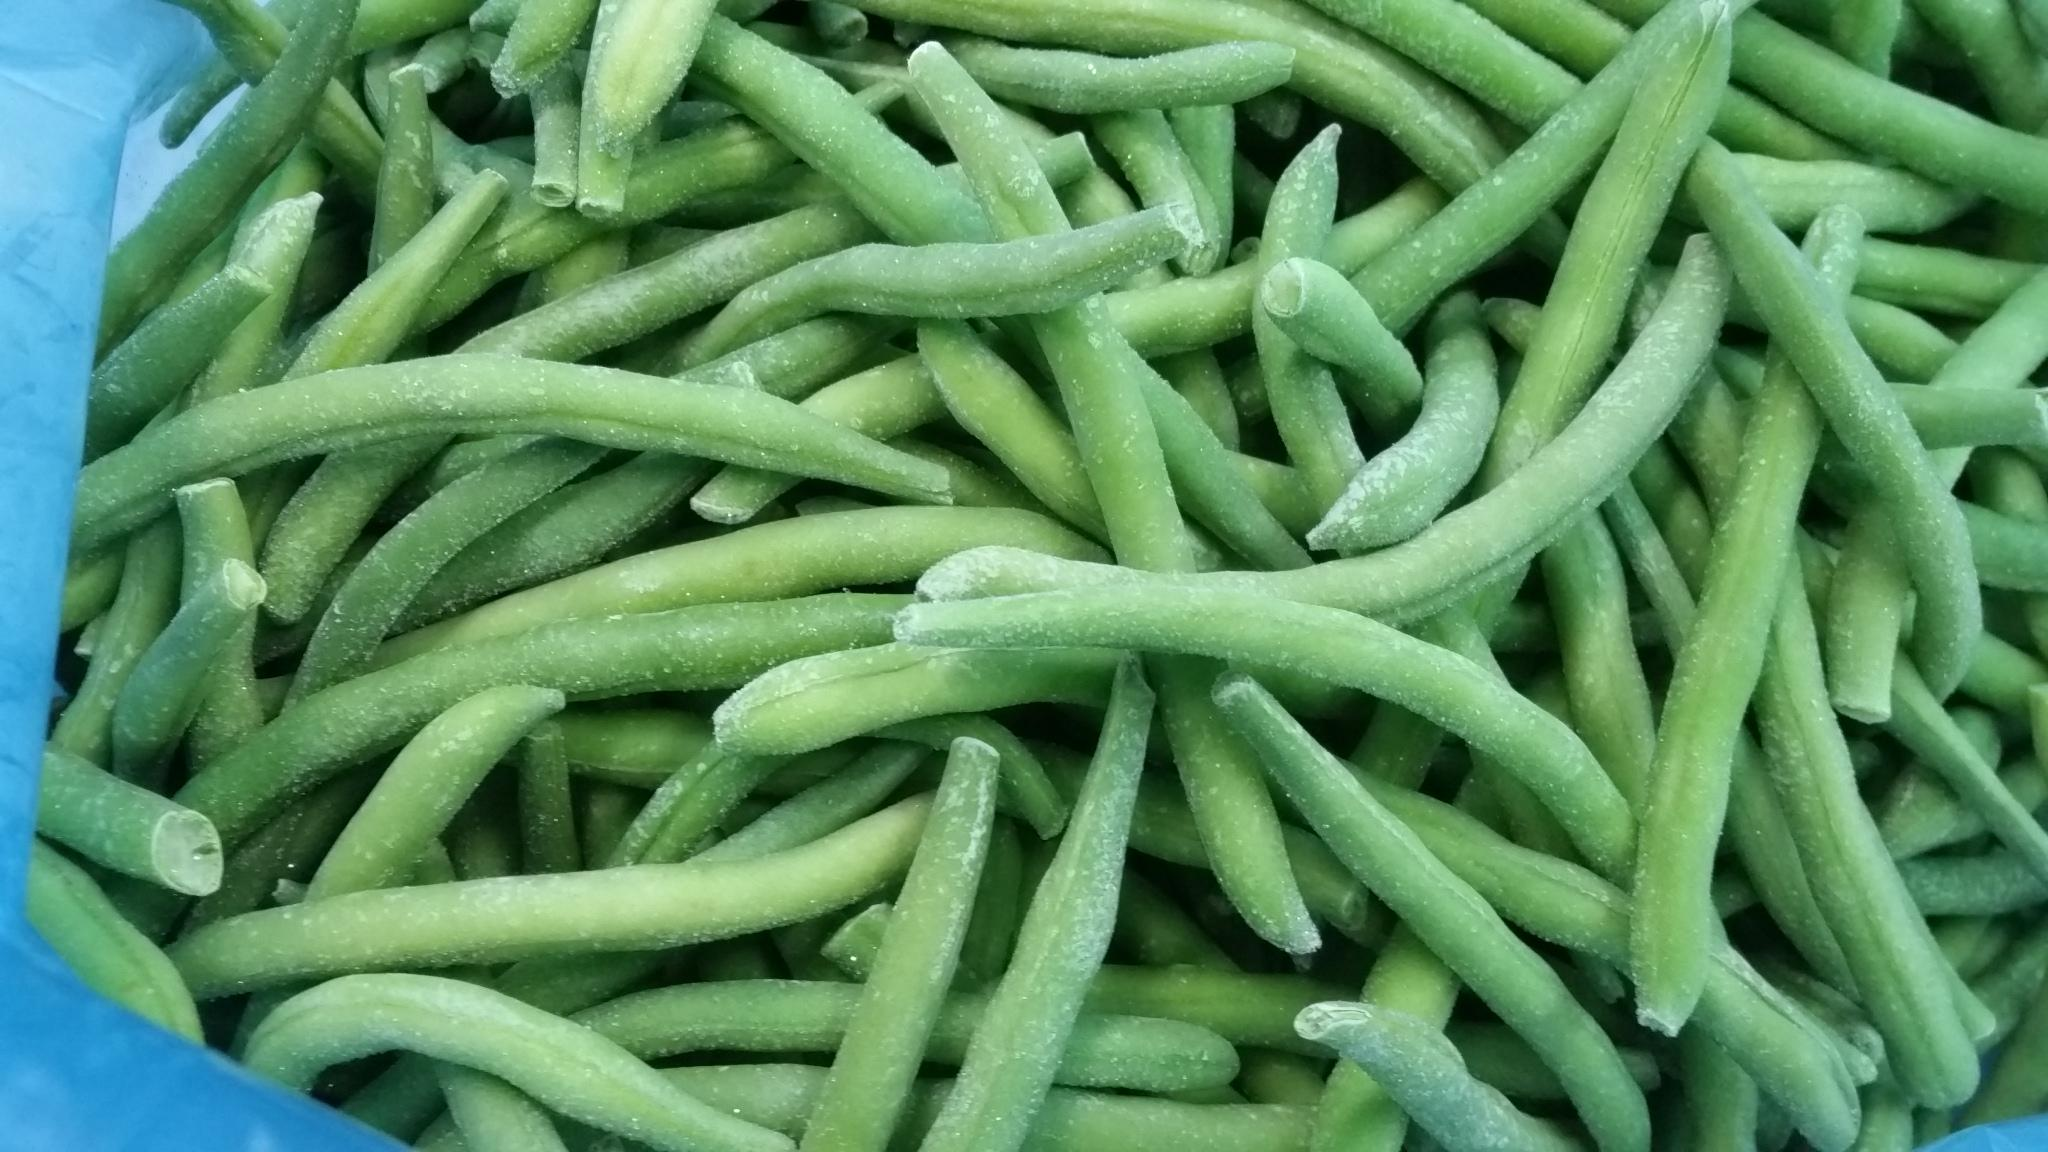 IQF Whole Green Beans ,Frozen Green Beans Wholes,IQF cut green beans 5